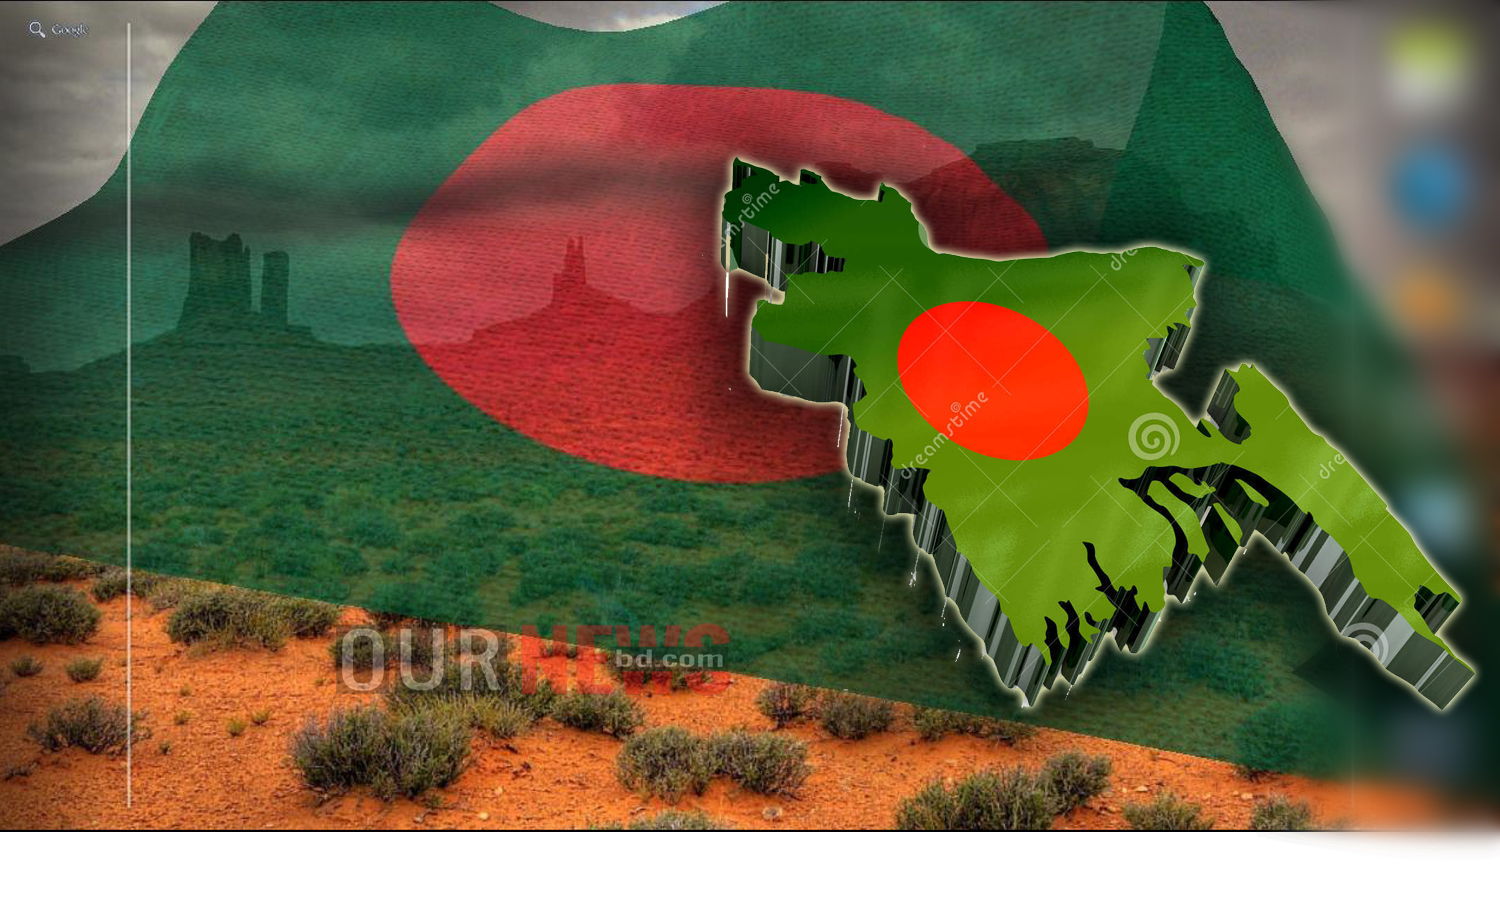 bangladesh map ournewsbd